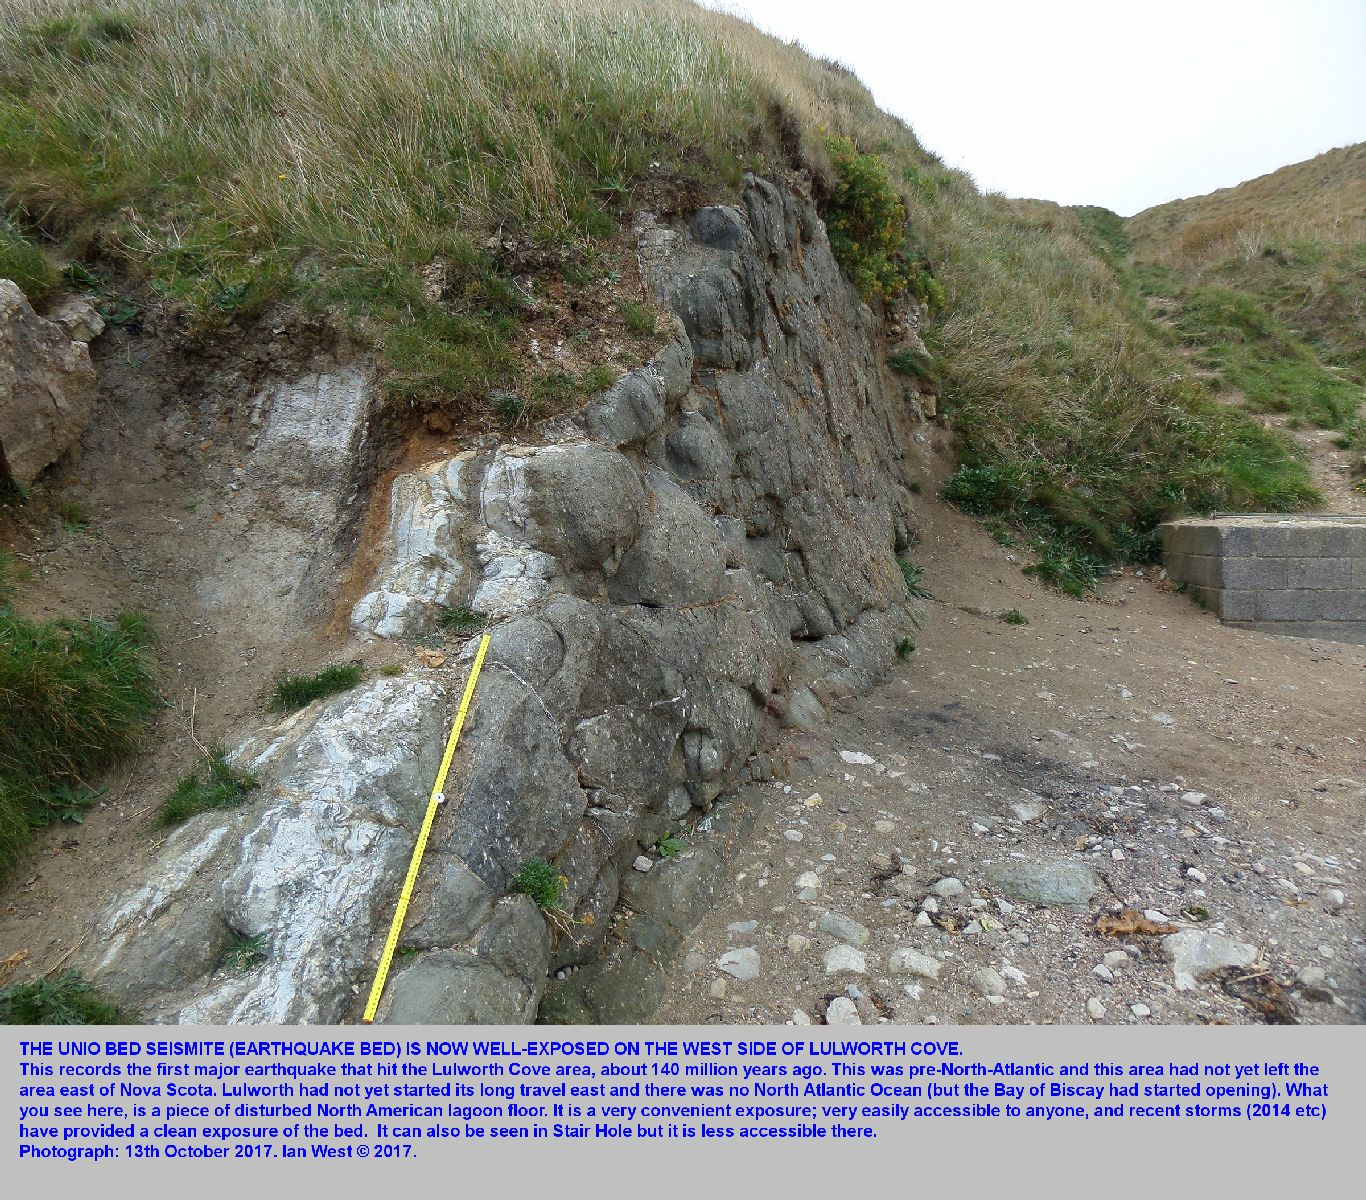 The seismite, or earthquake bed, in the Unio Member of the Upper Purbeck strata at the west side of Lulworth Cove, Dorset, an overview, 13th October, 2017